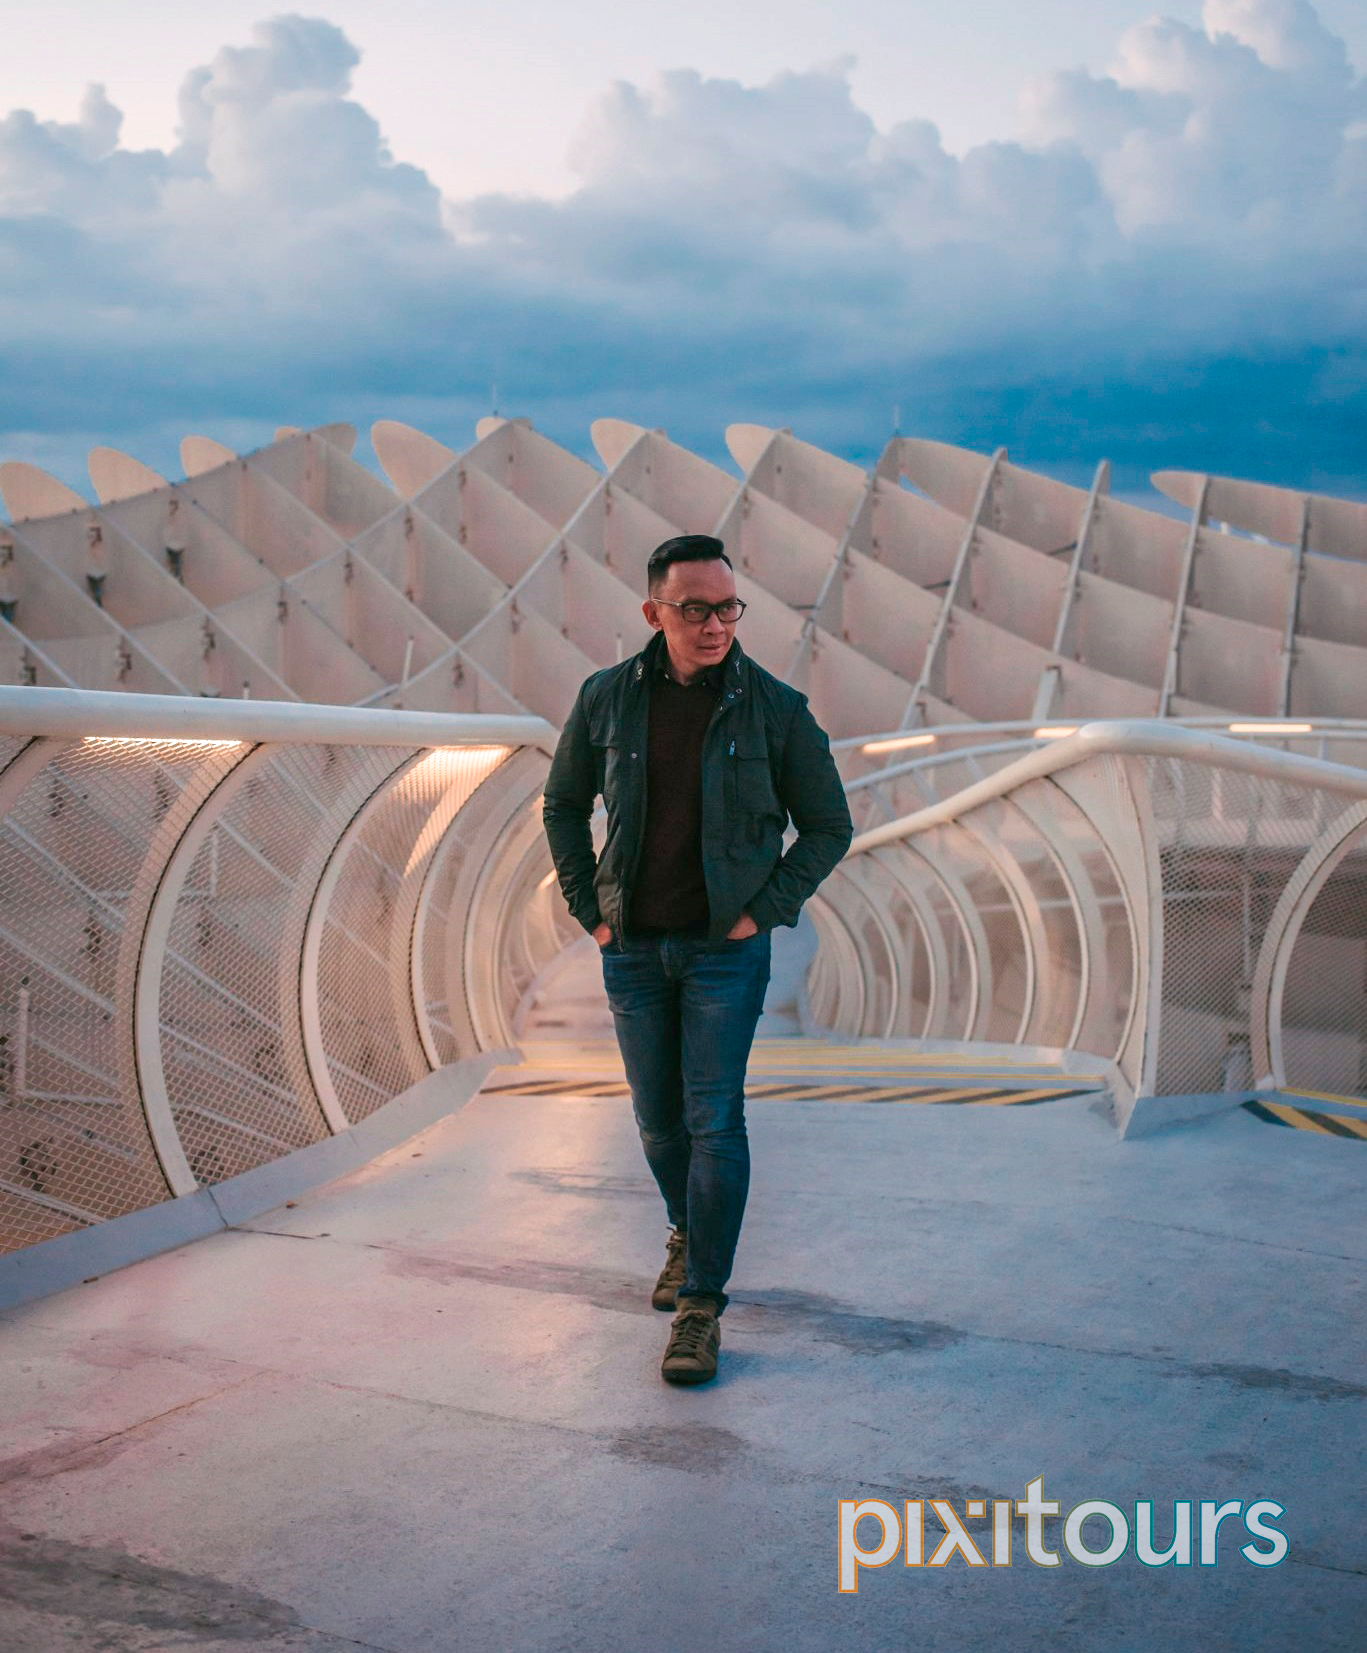 Model: Henri Fitriadi [@thefinicalwanderer](https://www.instagram.com/thefinicalwanderer) on the Roof of the Metropol Parasol in Seville